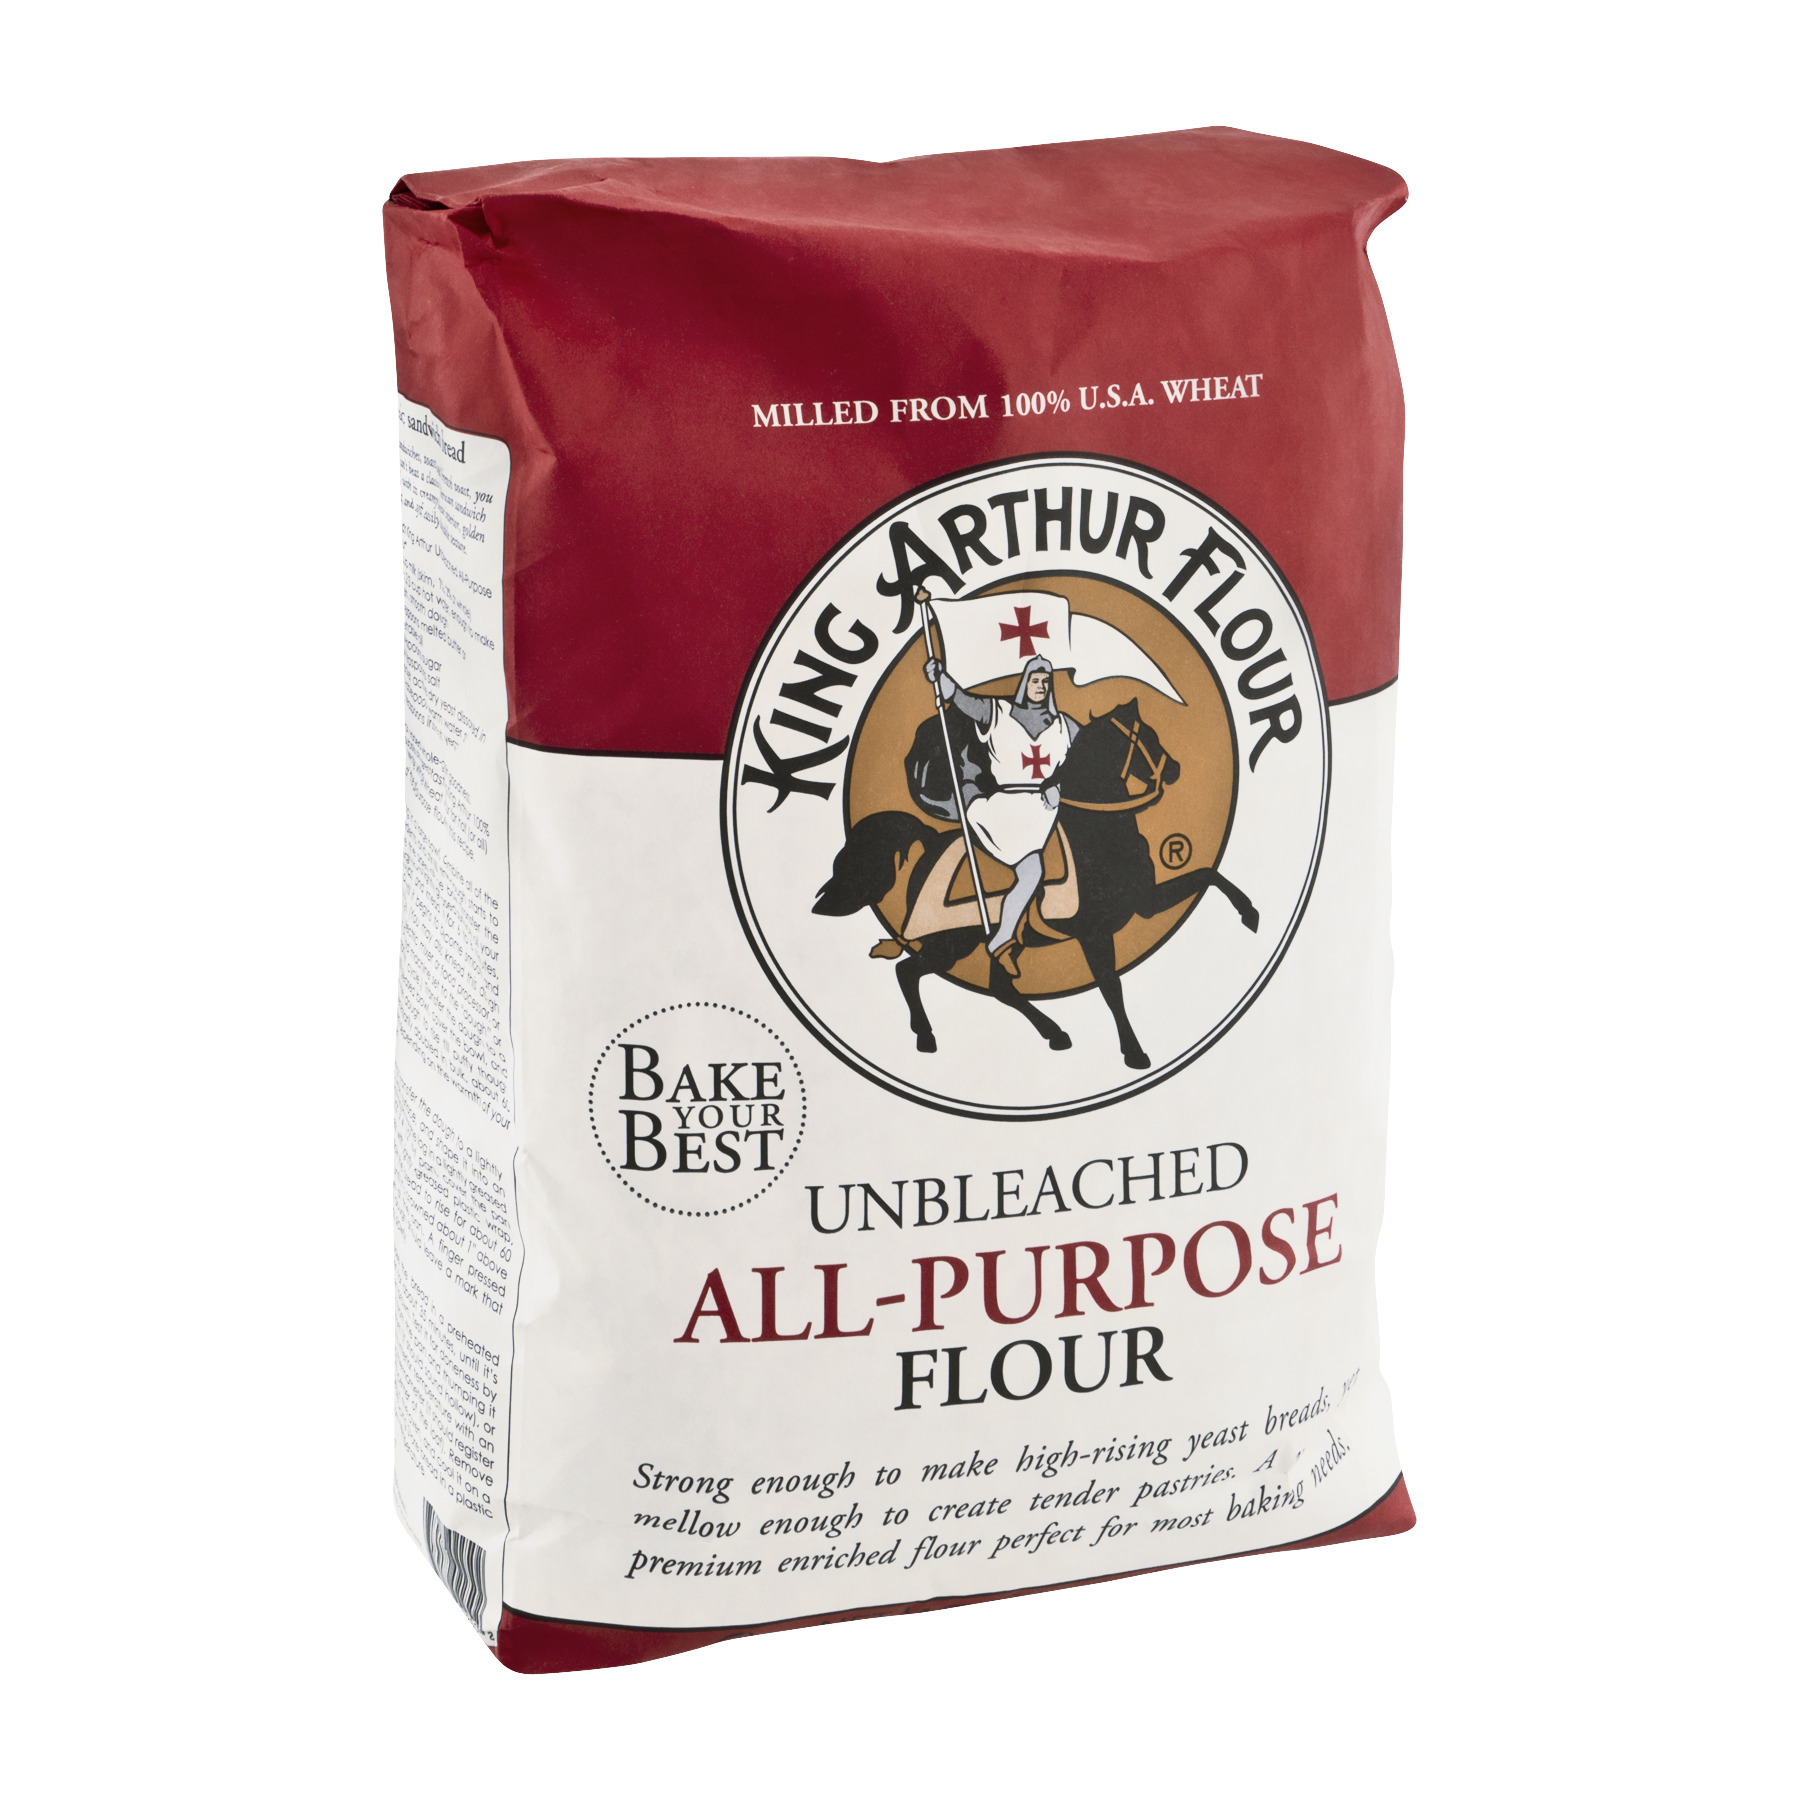 King Arthur Flour All-Purpose Flour Unbleached, 25.0 LB